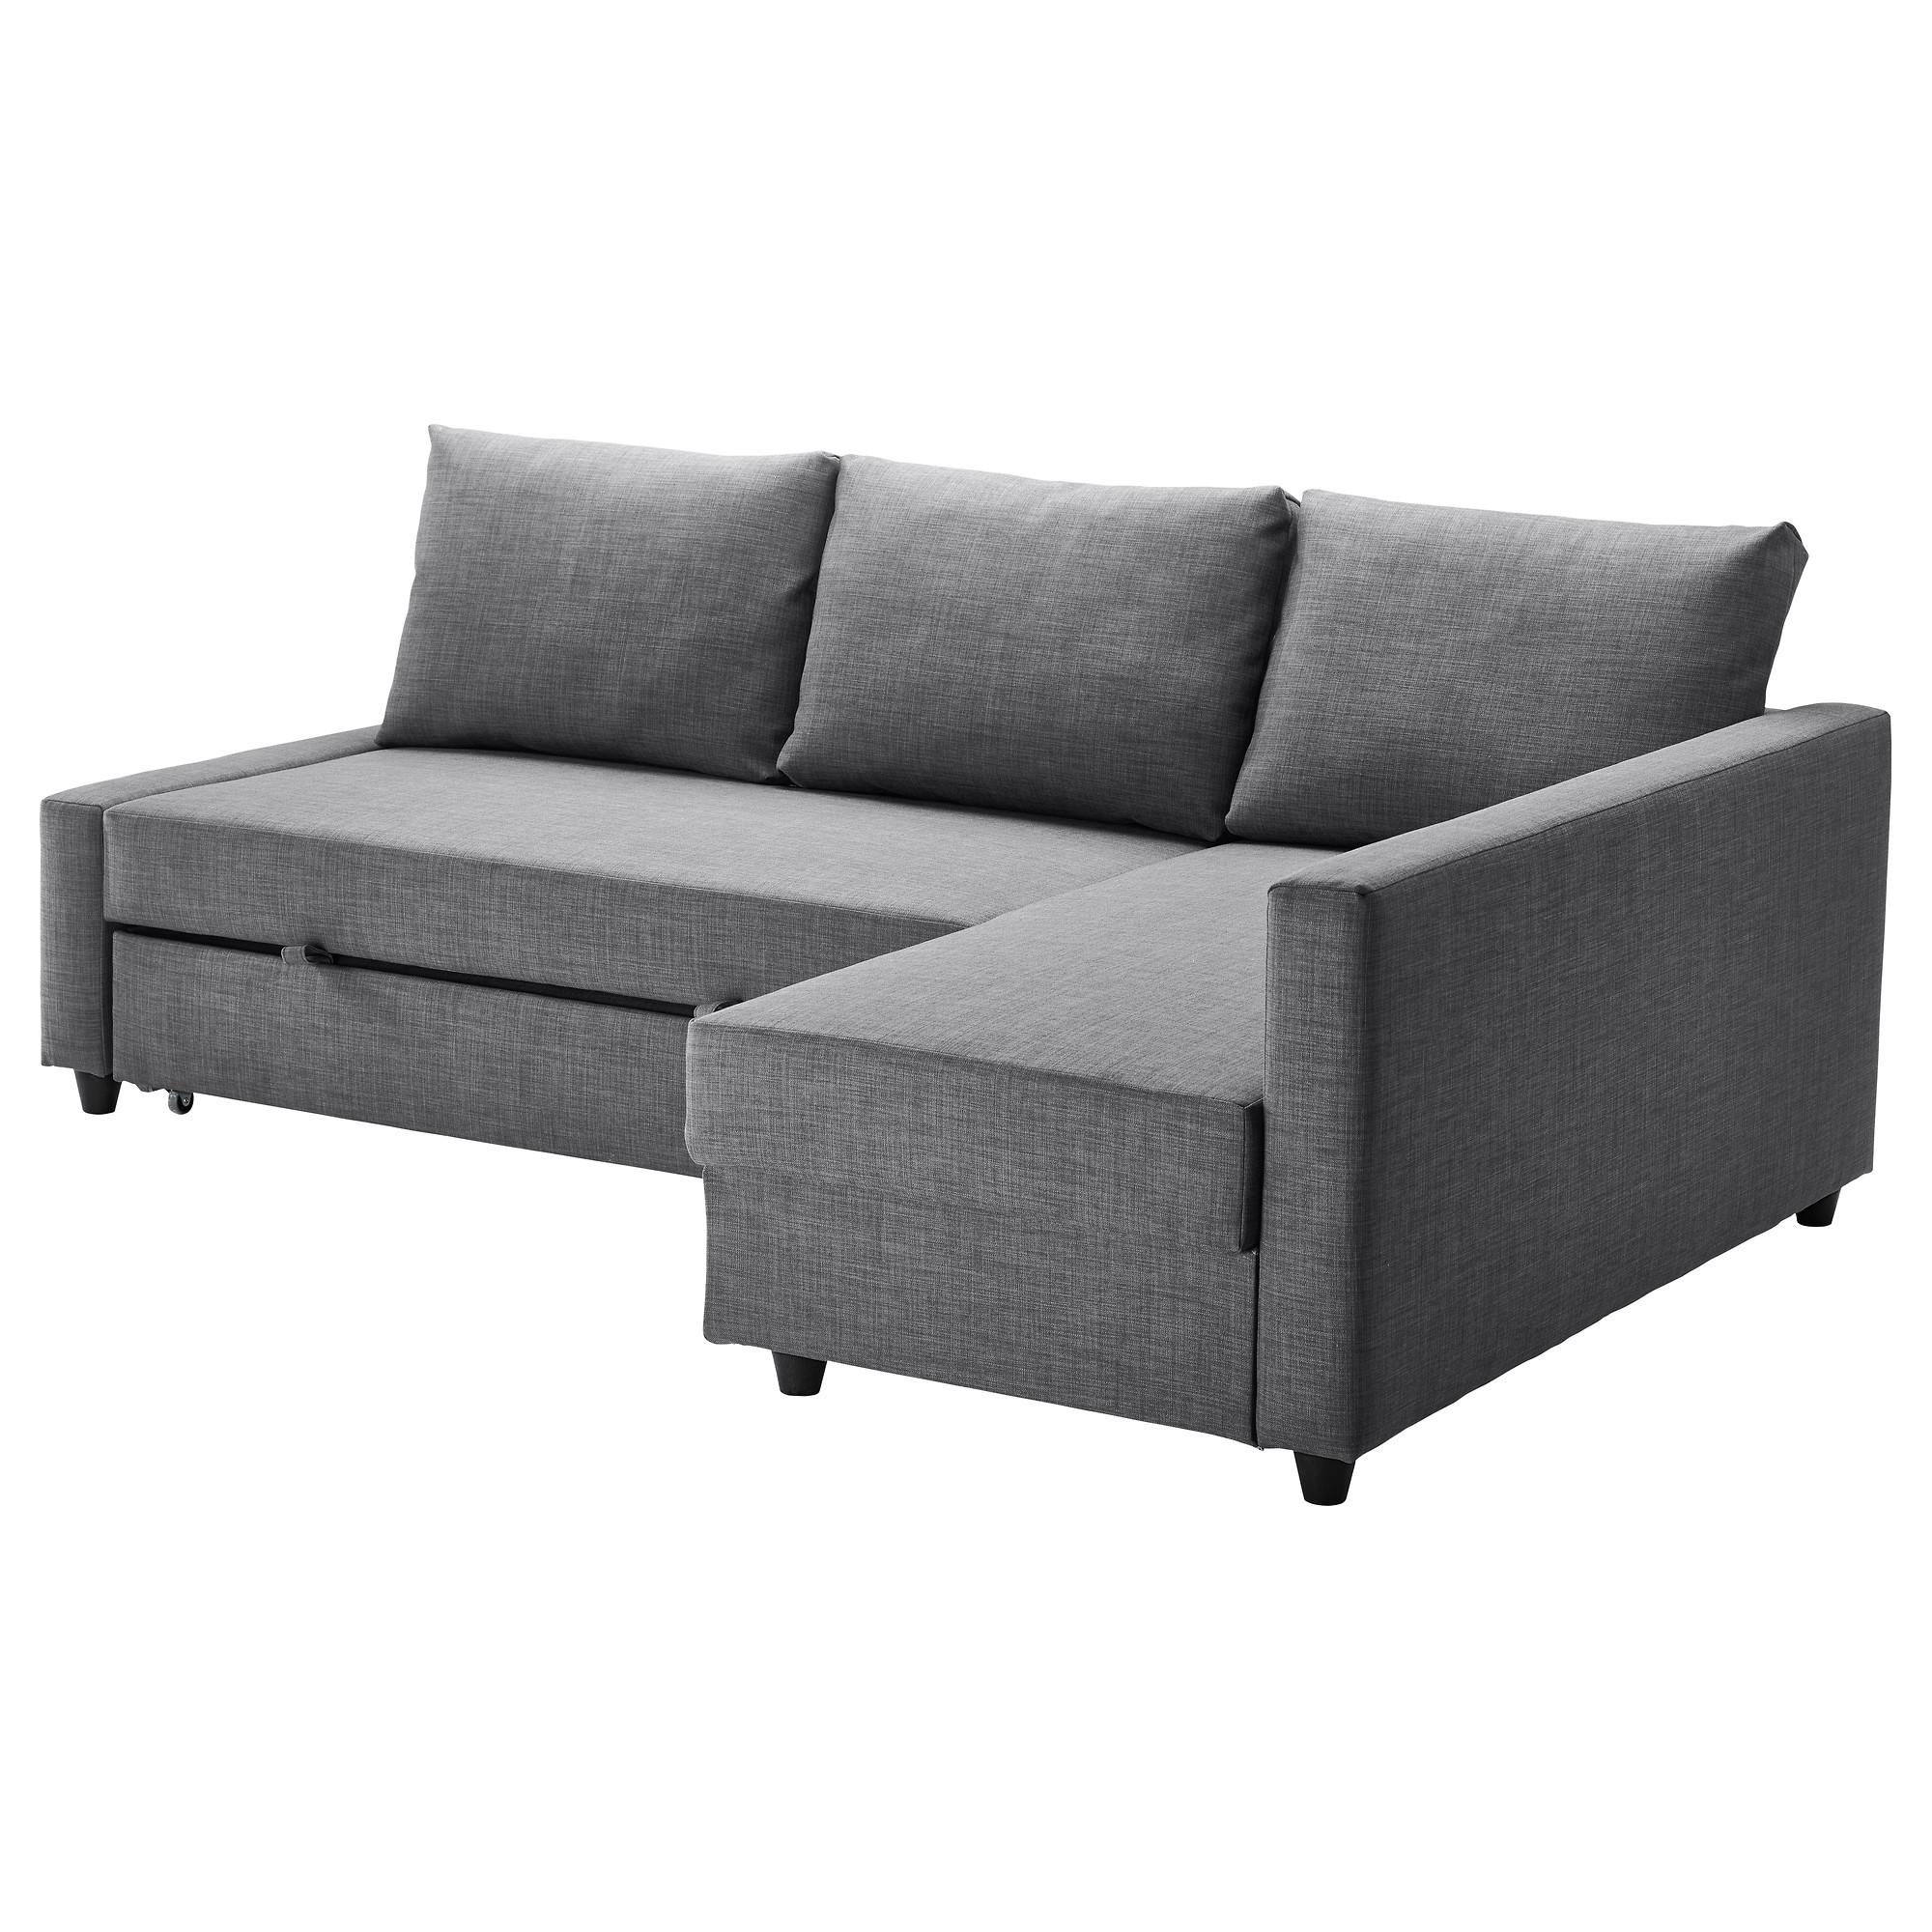 Friheten Corner Sofa Bed With Storage – Skiftebo Dark Grey – Ikea Regarding Ikea Storage Sofa Bed (View 2 of 20)